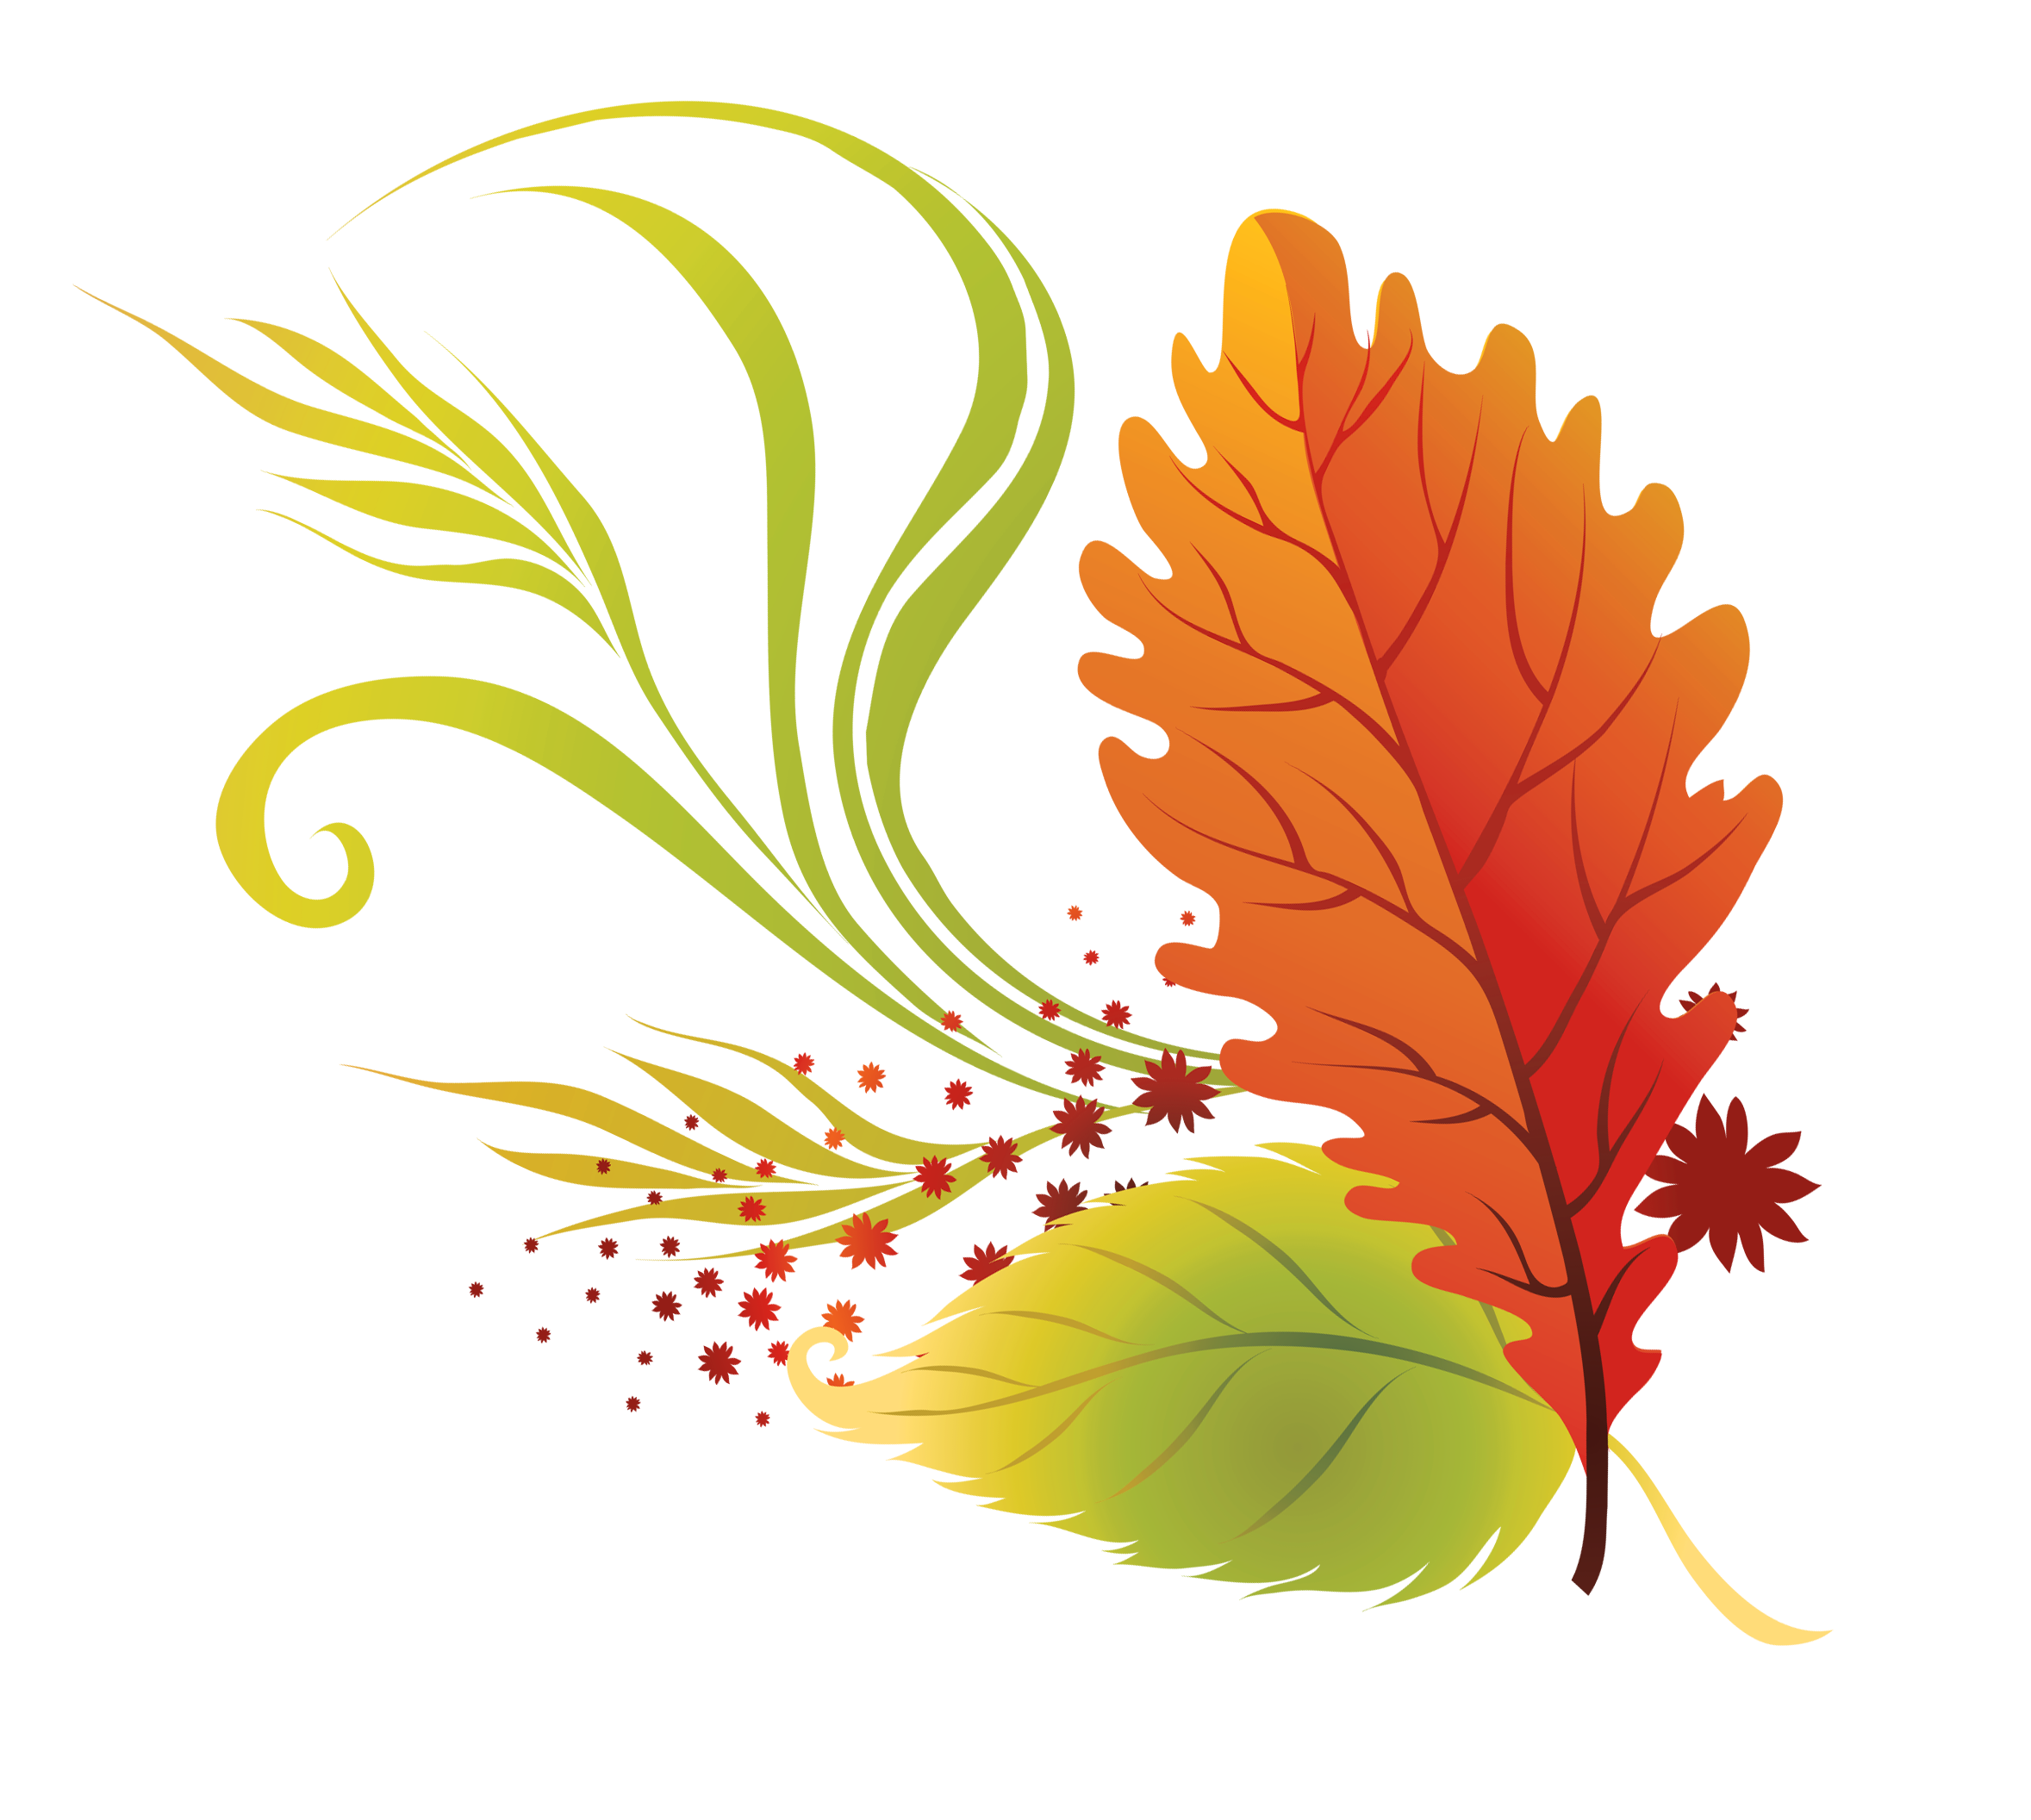 Transparent Fall Leaves Png Clipart Picture Png Png Image 2357 2112 Pixels Scaled 29 Fall Clip Art Fall Leaves Png Autumn Leaves